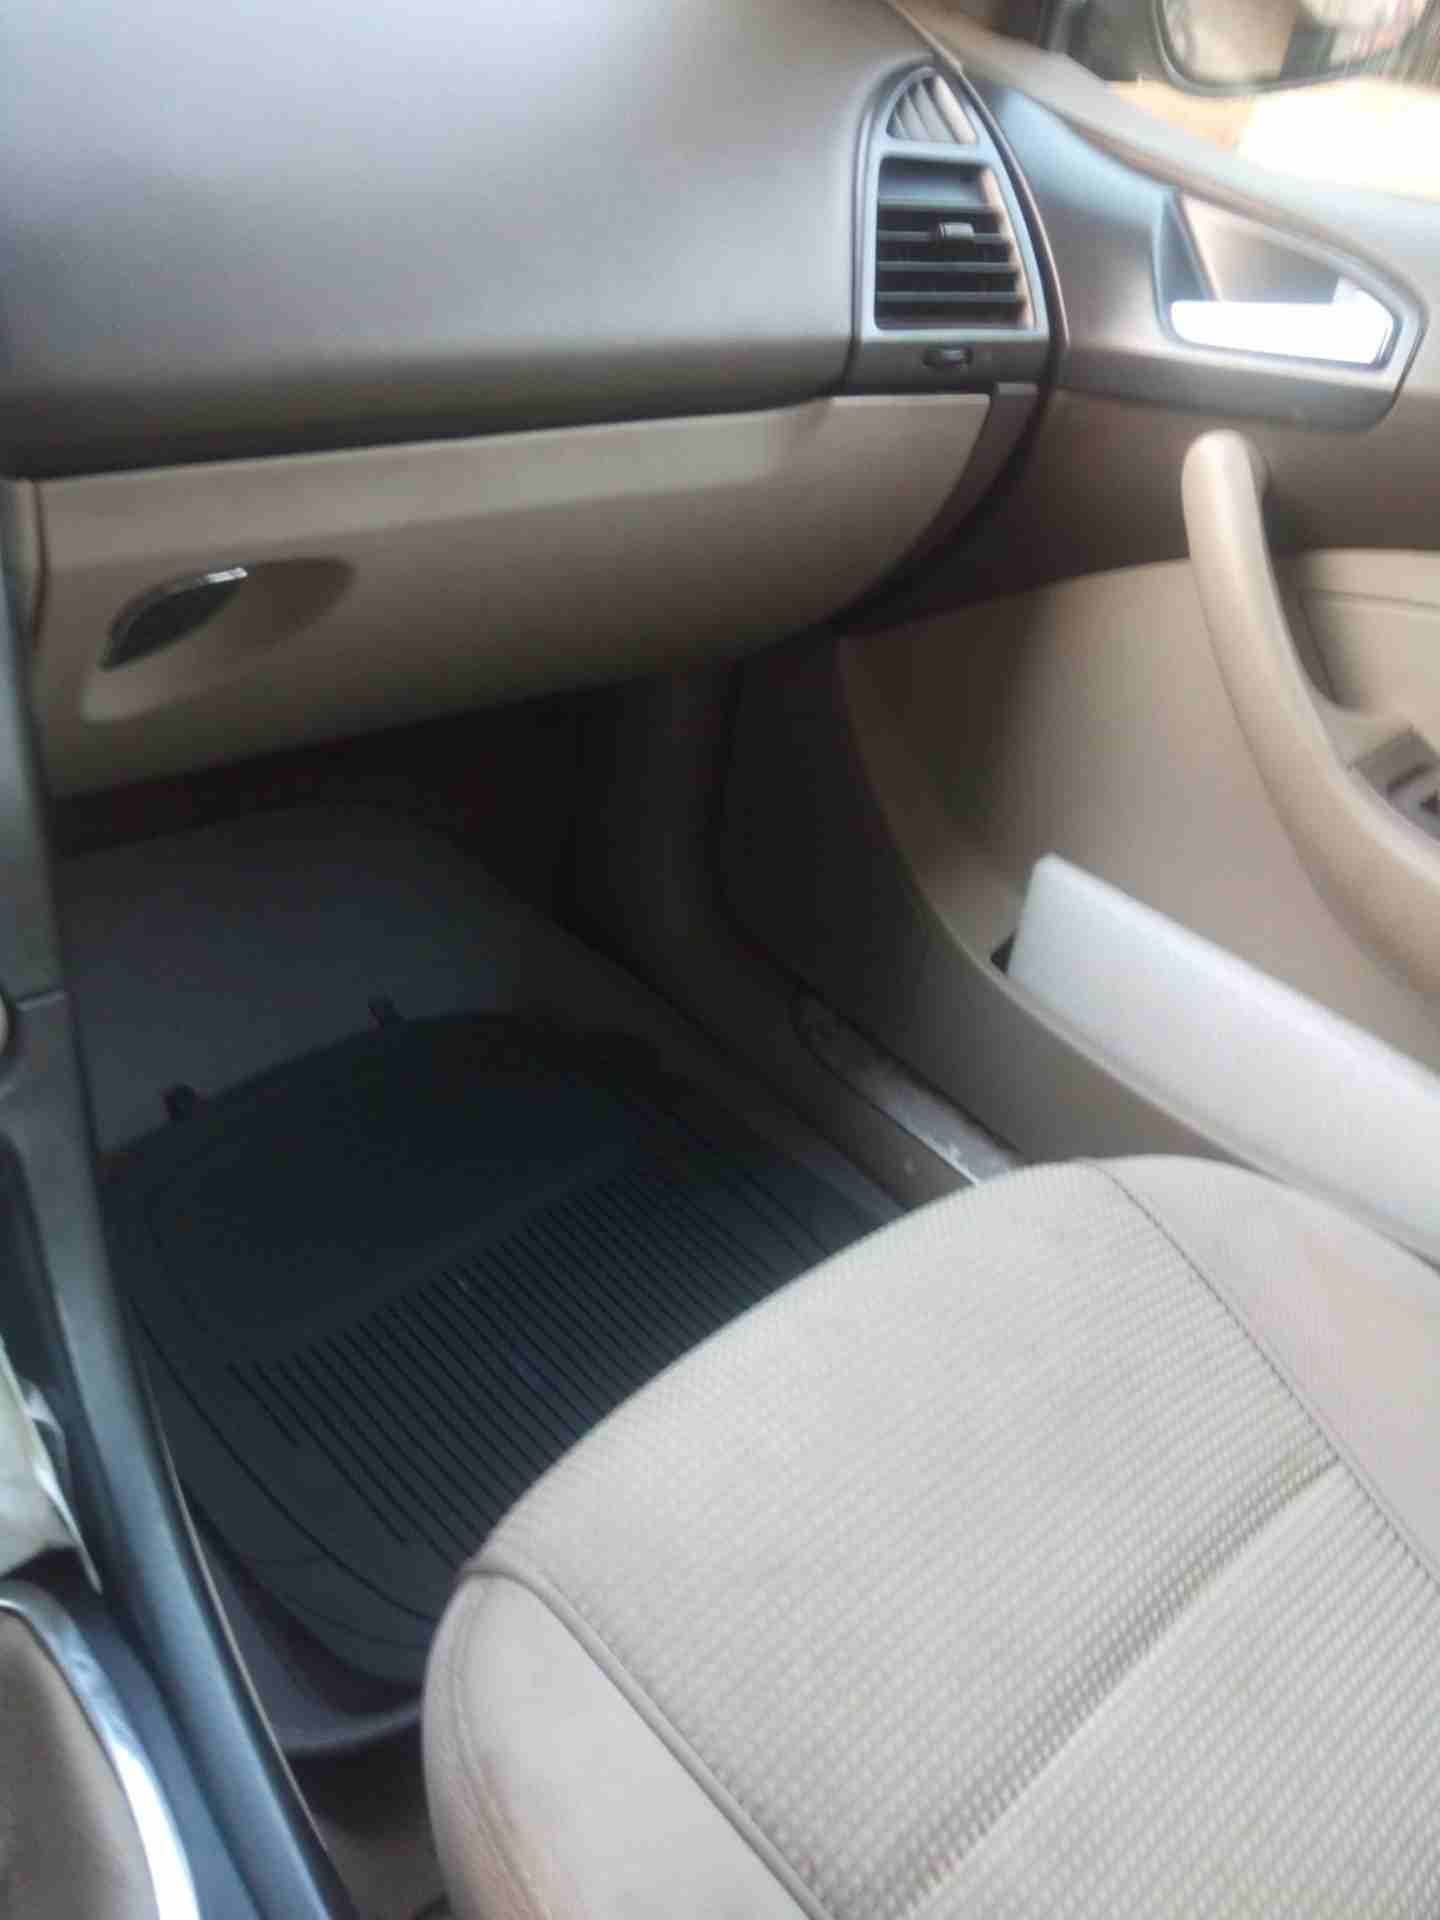 Lexus Rx 350 SUV 2018 GCC is very clean like brand new with warranty,Red 2018 model, This car has automatic transmission.GCC specs.CONTACT EMAIL: Mrharry1931@gm-  اسبرانزا m11 موديل 2010...